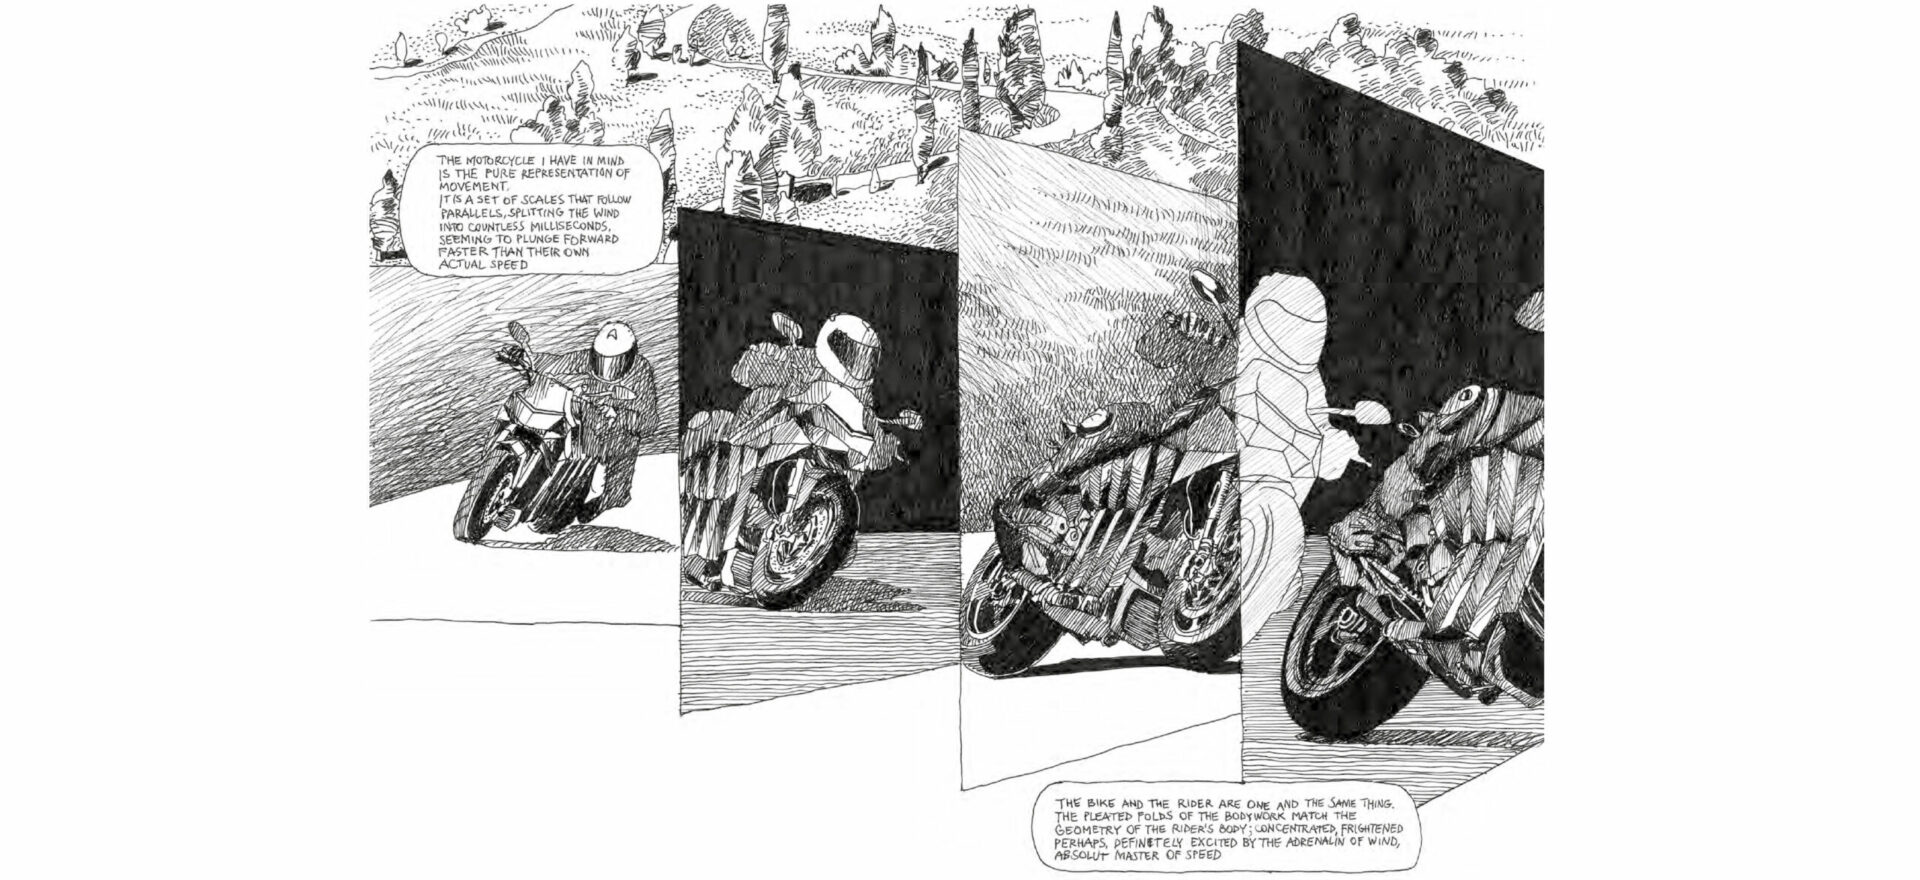 Samotraccia copper motorbike Art Drawing by Mario Trimarchi for De Castelli with black ink on white paper showing a Manga style on the details delated form, speed and time.